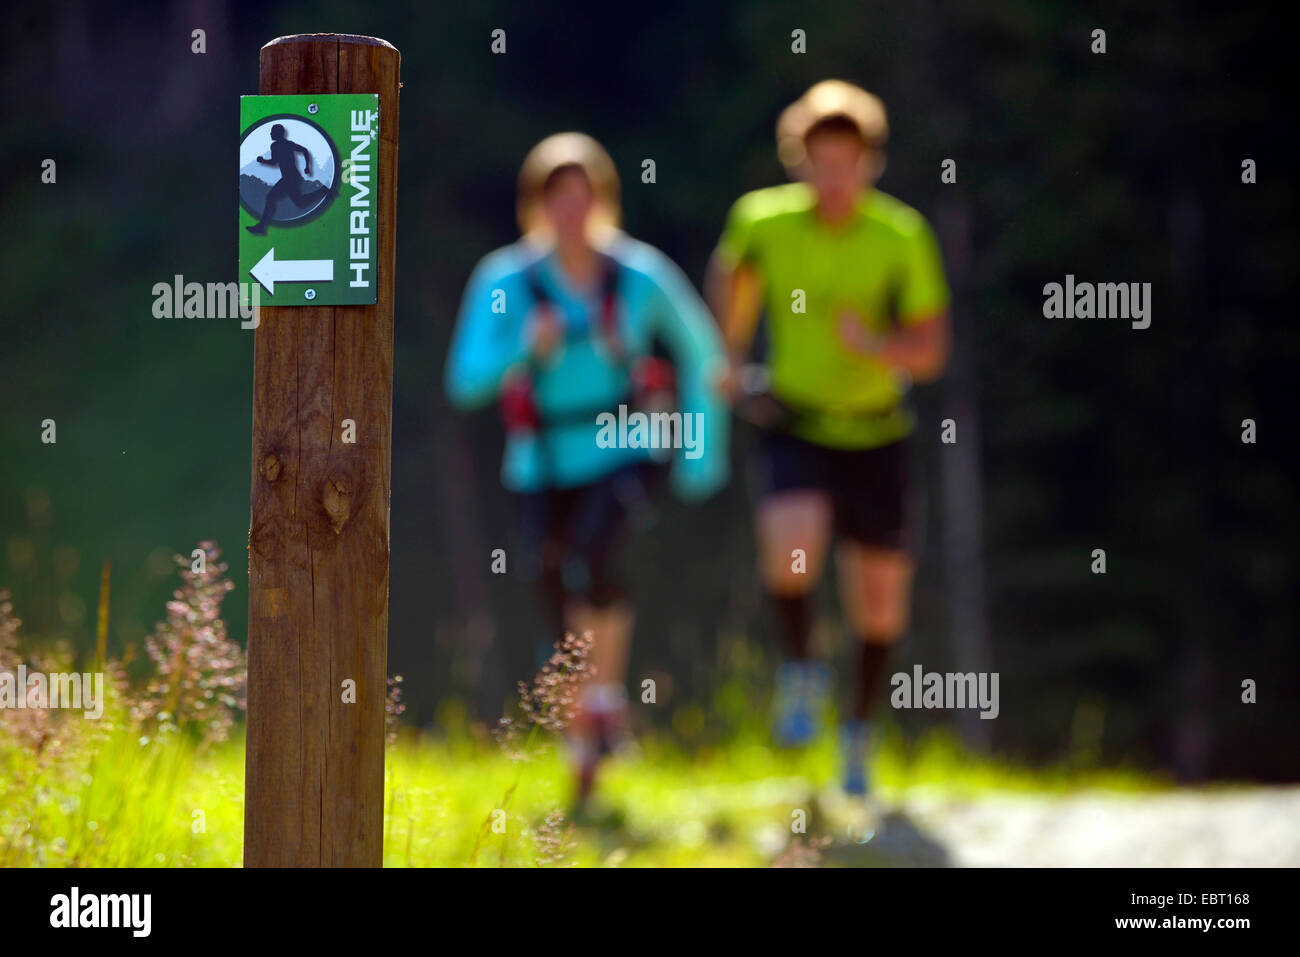 post with hiking sign, two joggers in background, France, Savoie, Sainte Foy Tarentaise - Stock Image